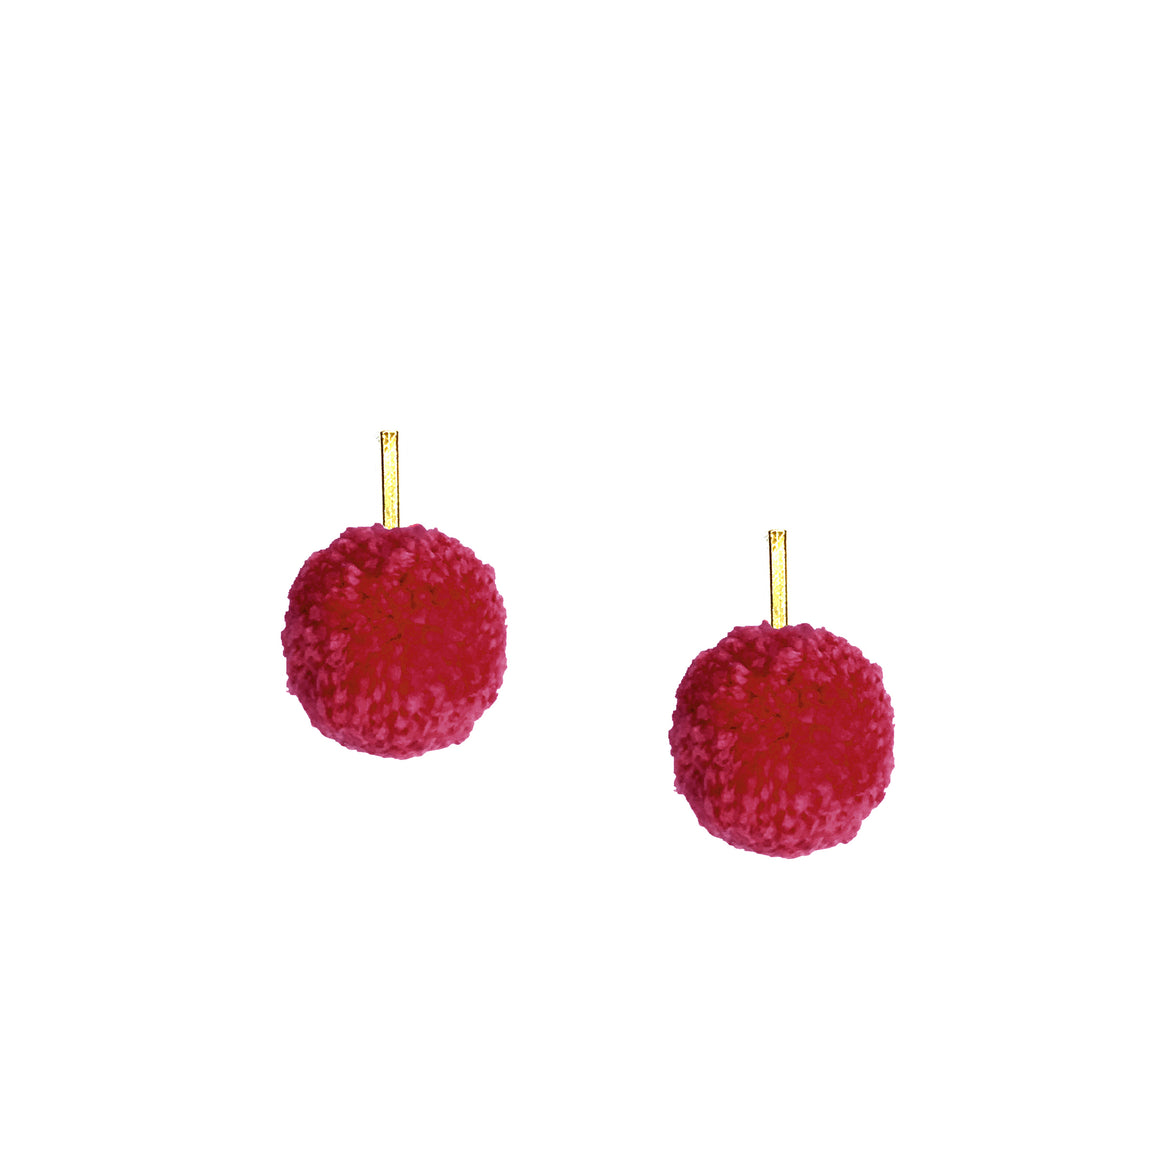 "Cranberry 1"" Yarn Pom Pom Stud Earrings, Earrings, Tuleste, Tuleste"